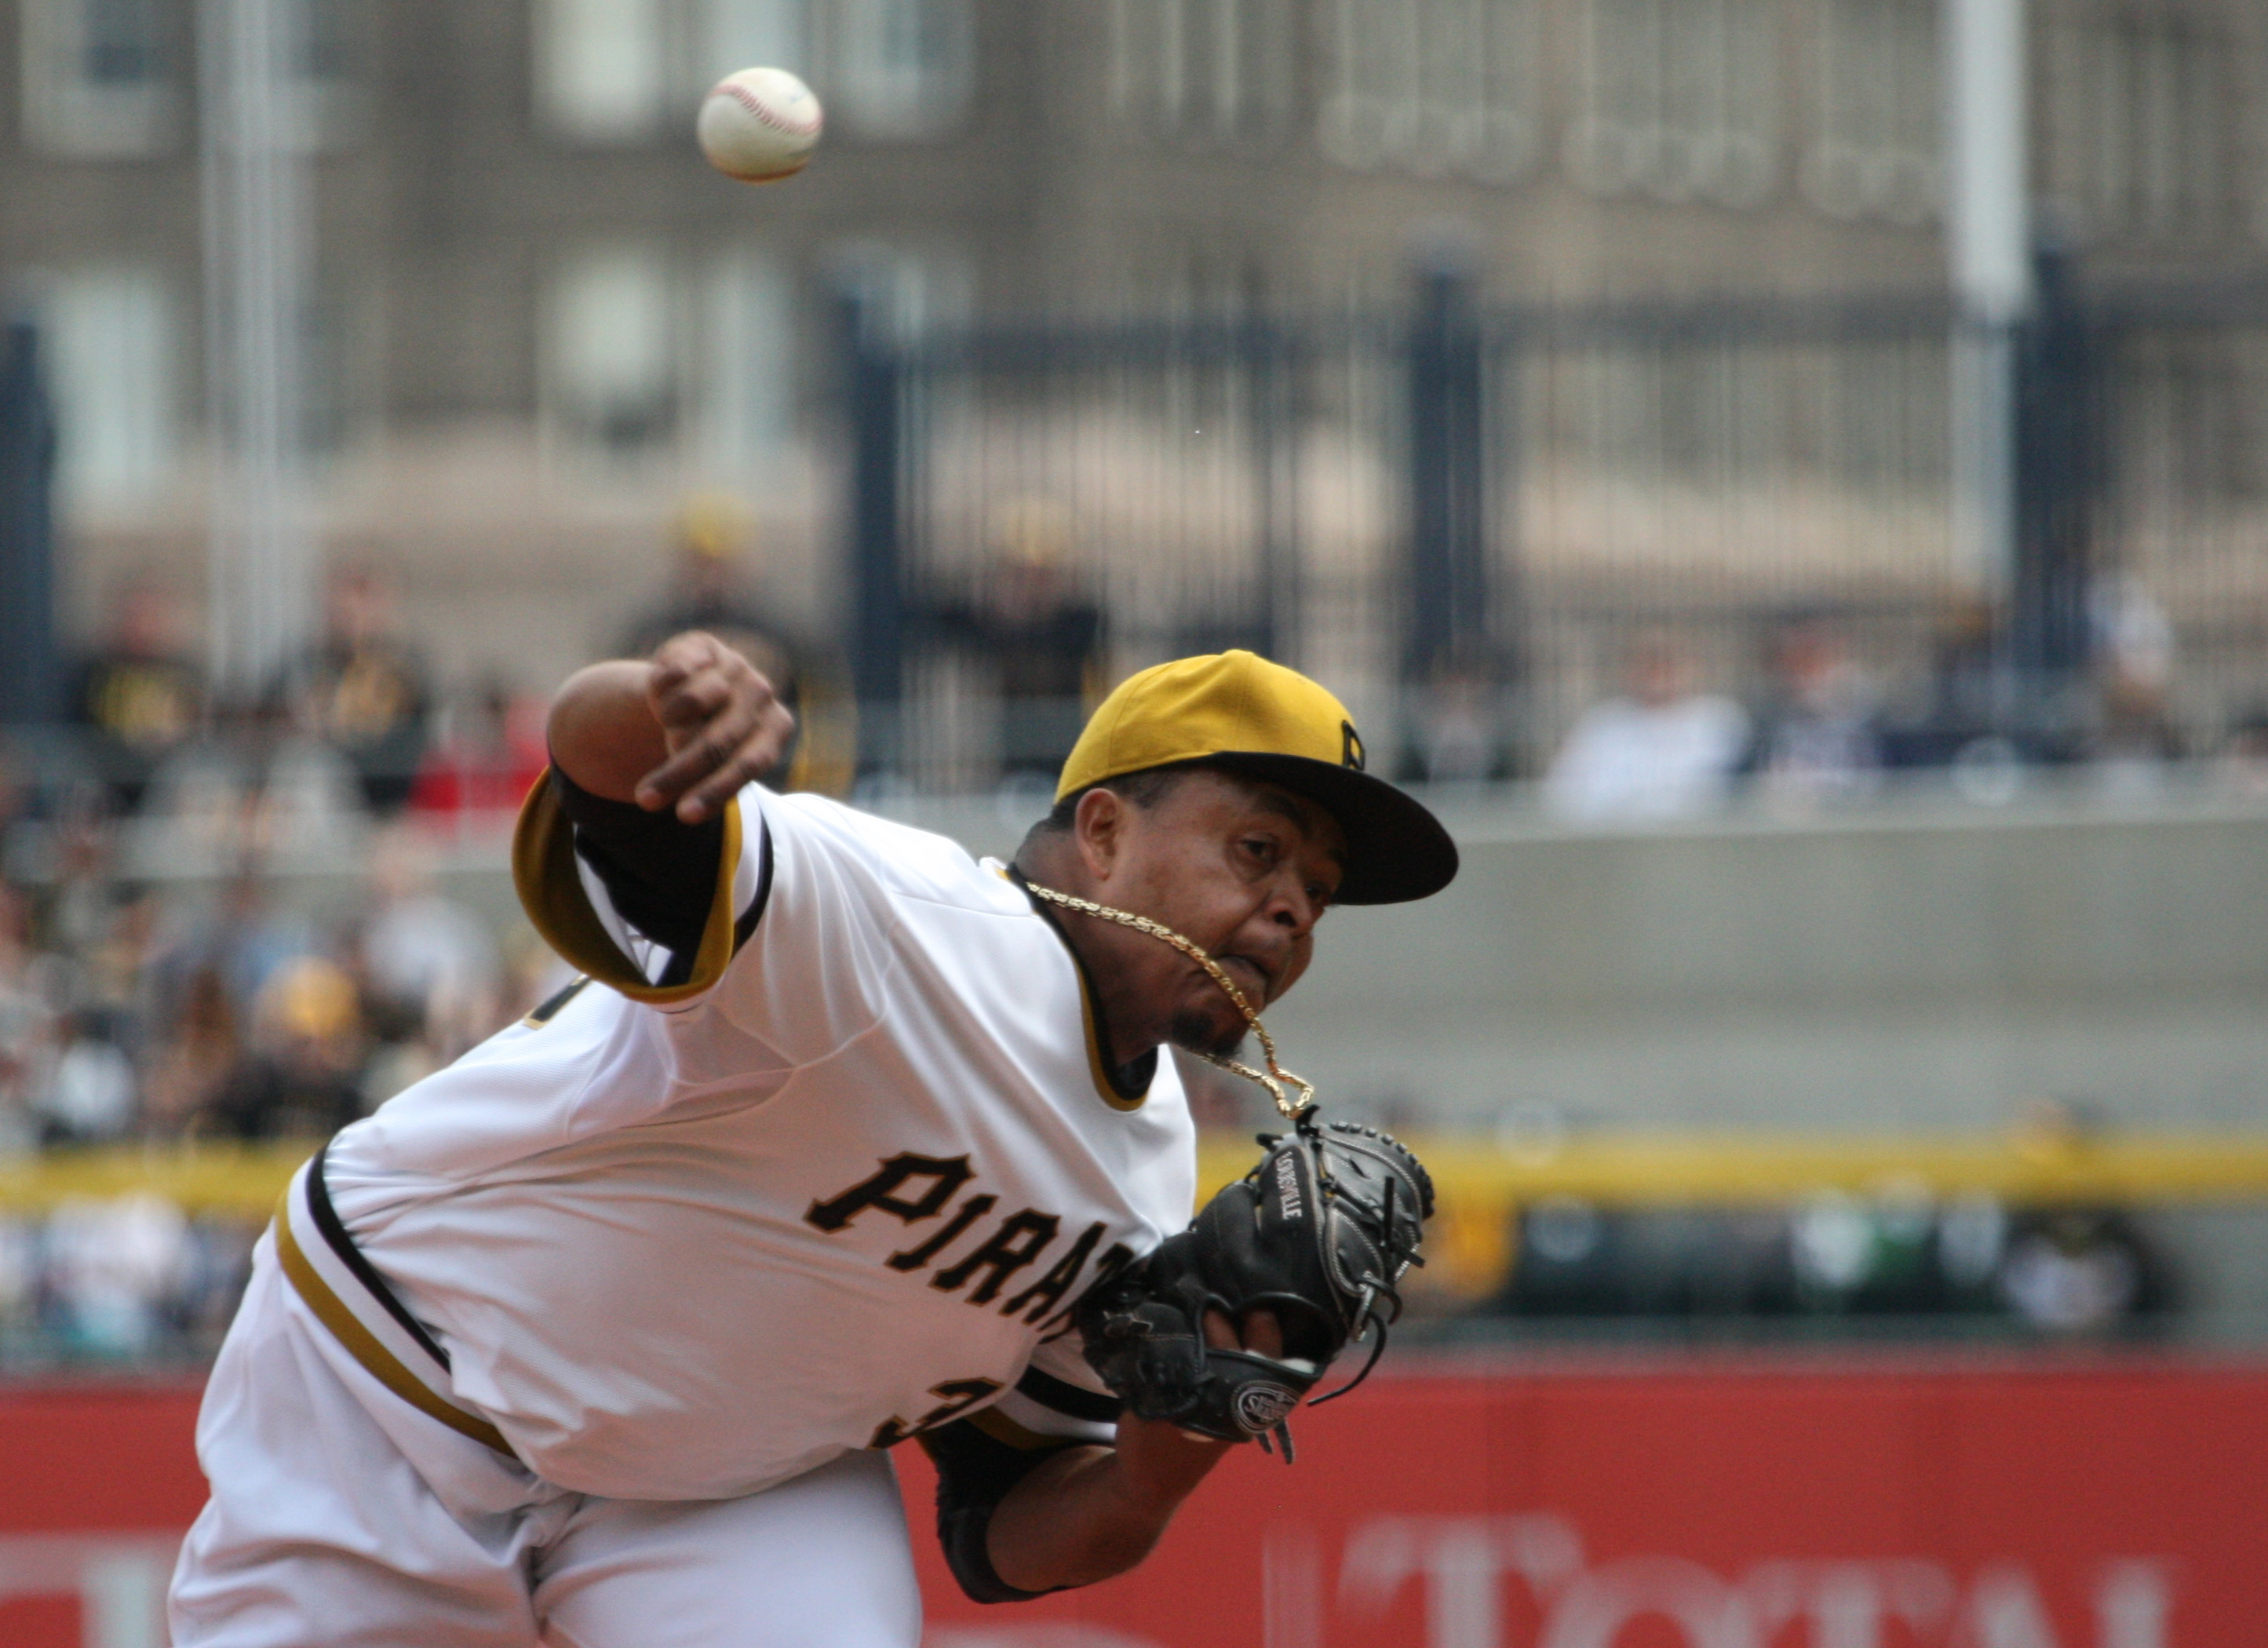 Volquez started strong, with a 1.93 ERA in his first four starts, but allowed six runs in each of his last two outings. (Photo by: David Hague)